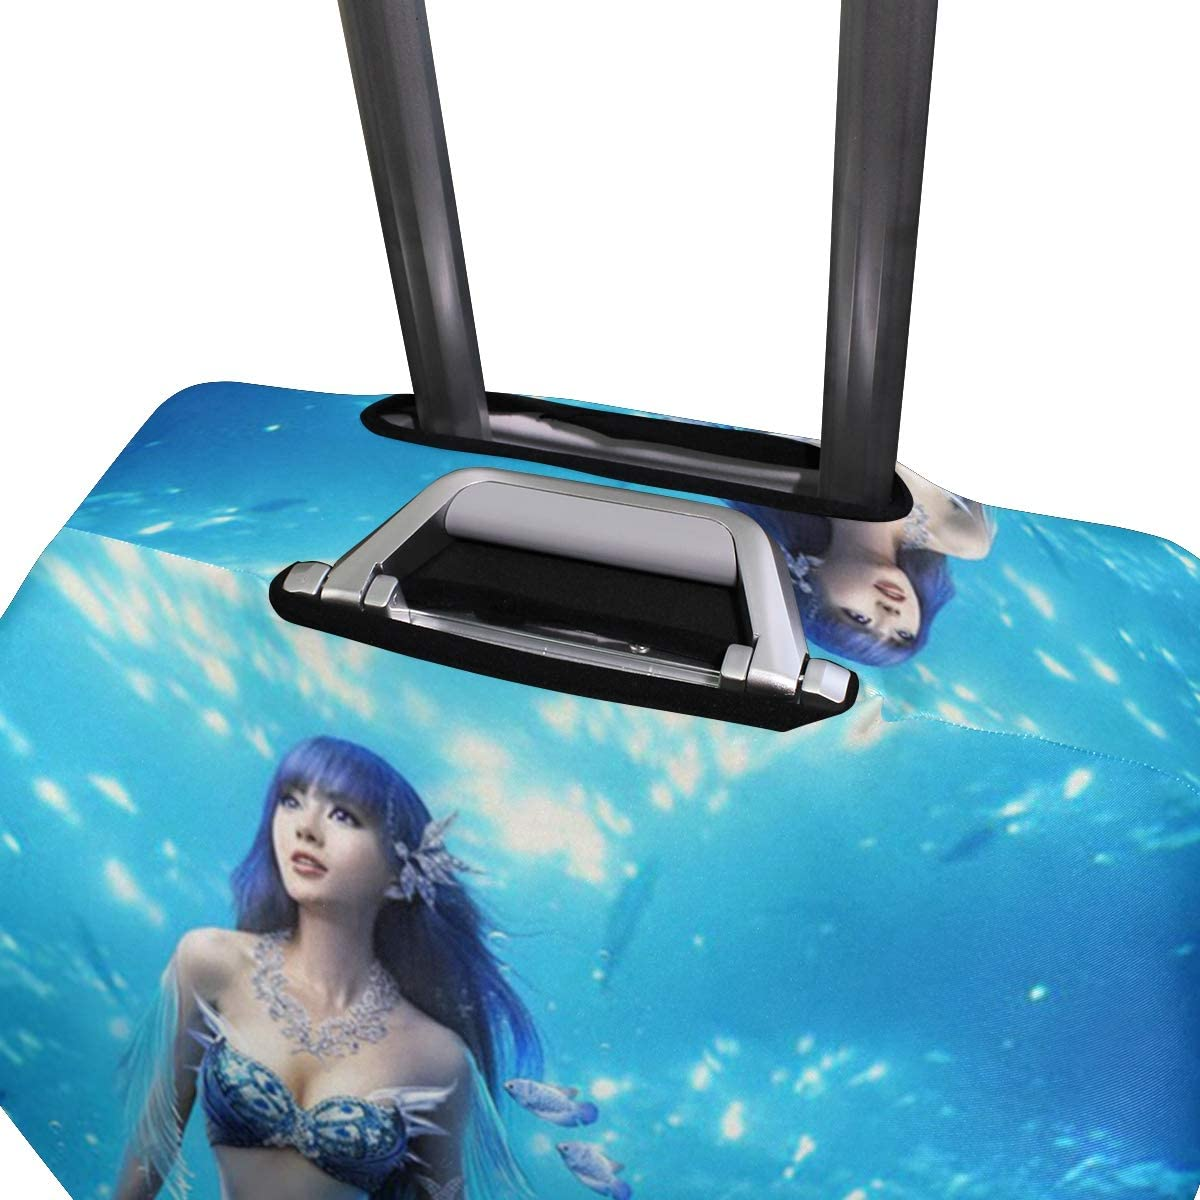 Fit 18 to 32 Jacksome Mermaid Luggage Cover Washable Elastic Suitcase Cover Protector Size XL 29-32 inch